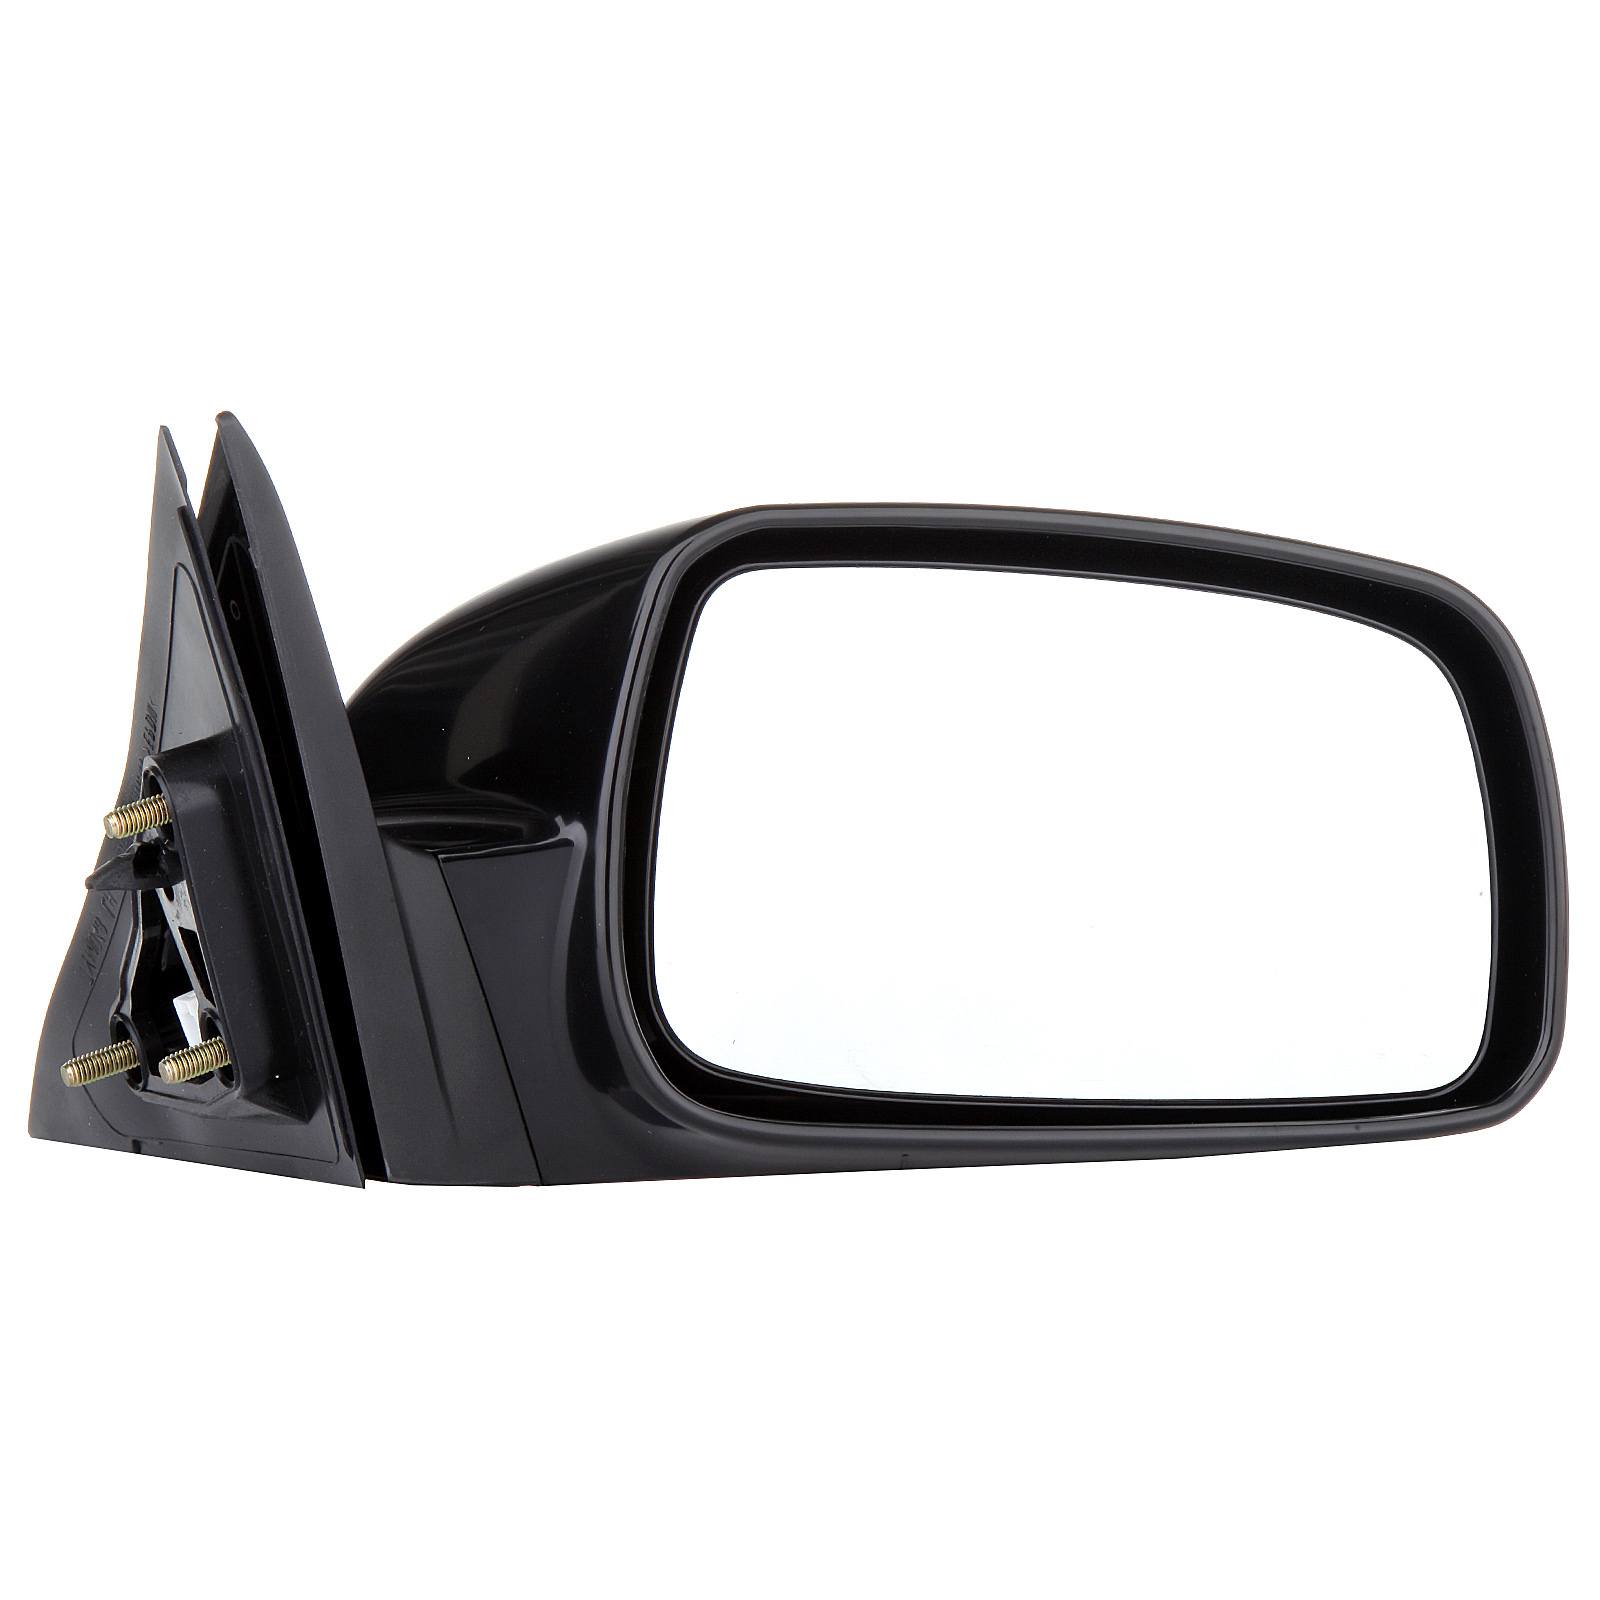 Eccpp 1 pcs passenger side car rearview power mirror for 07 08 09 10 toyota camry